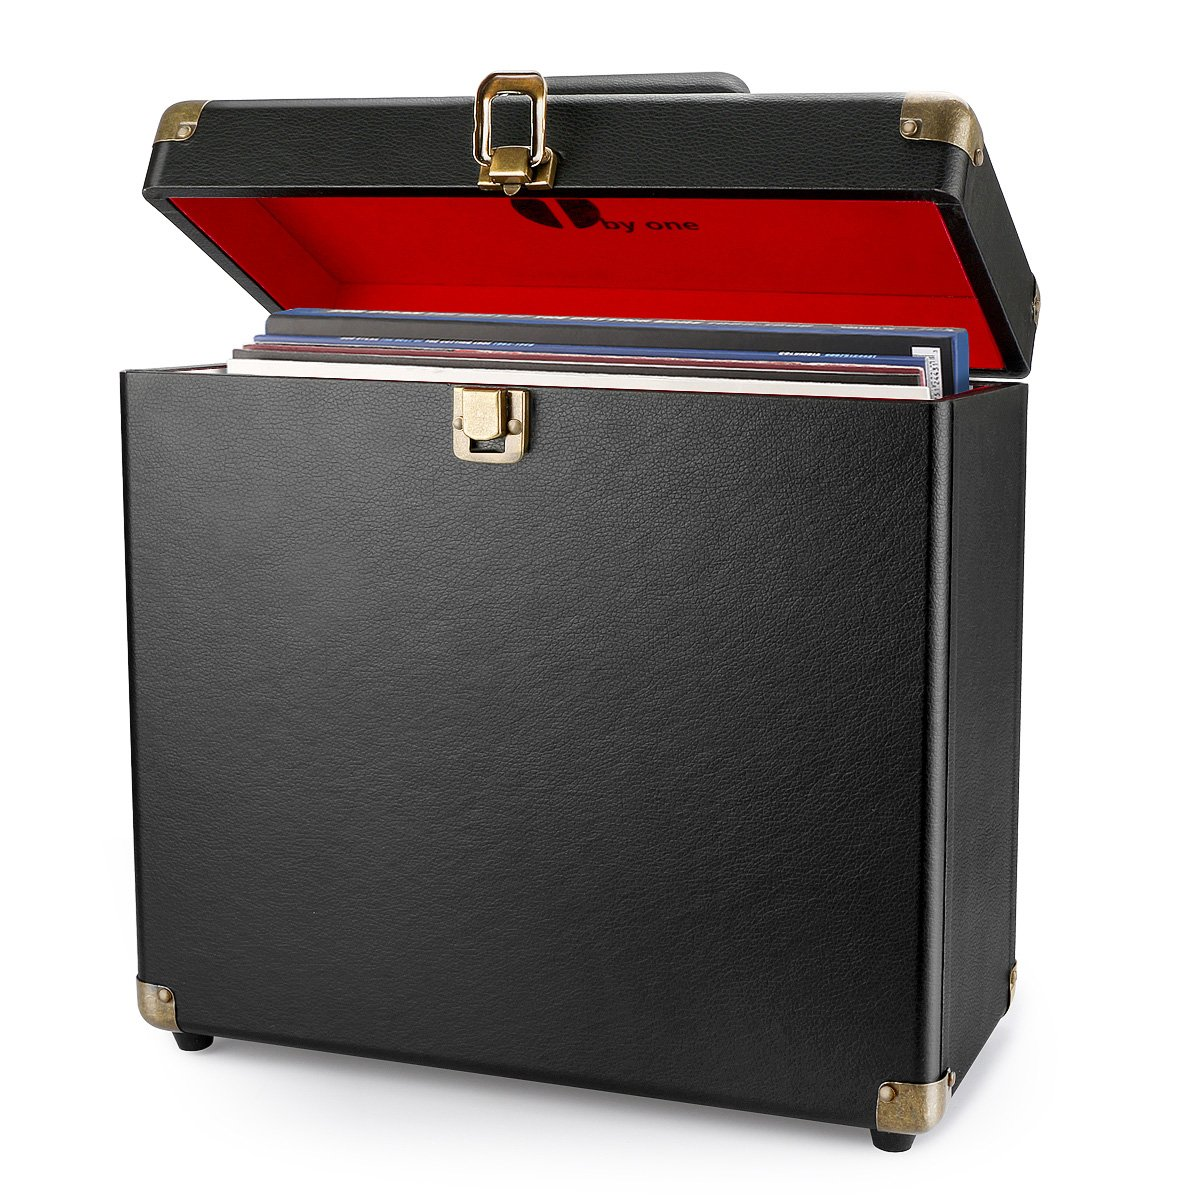 Black 472US-0003 1byone Vinyl Record Storage Case for 30 Albums